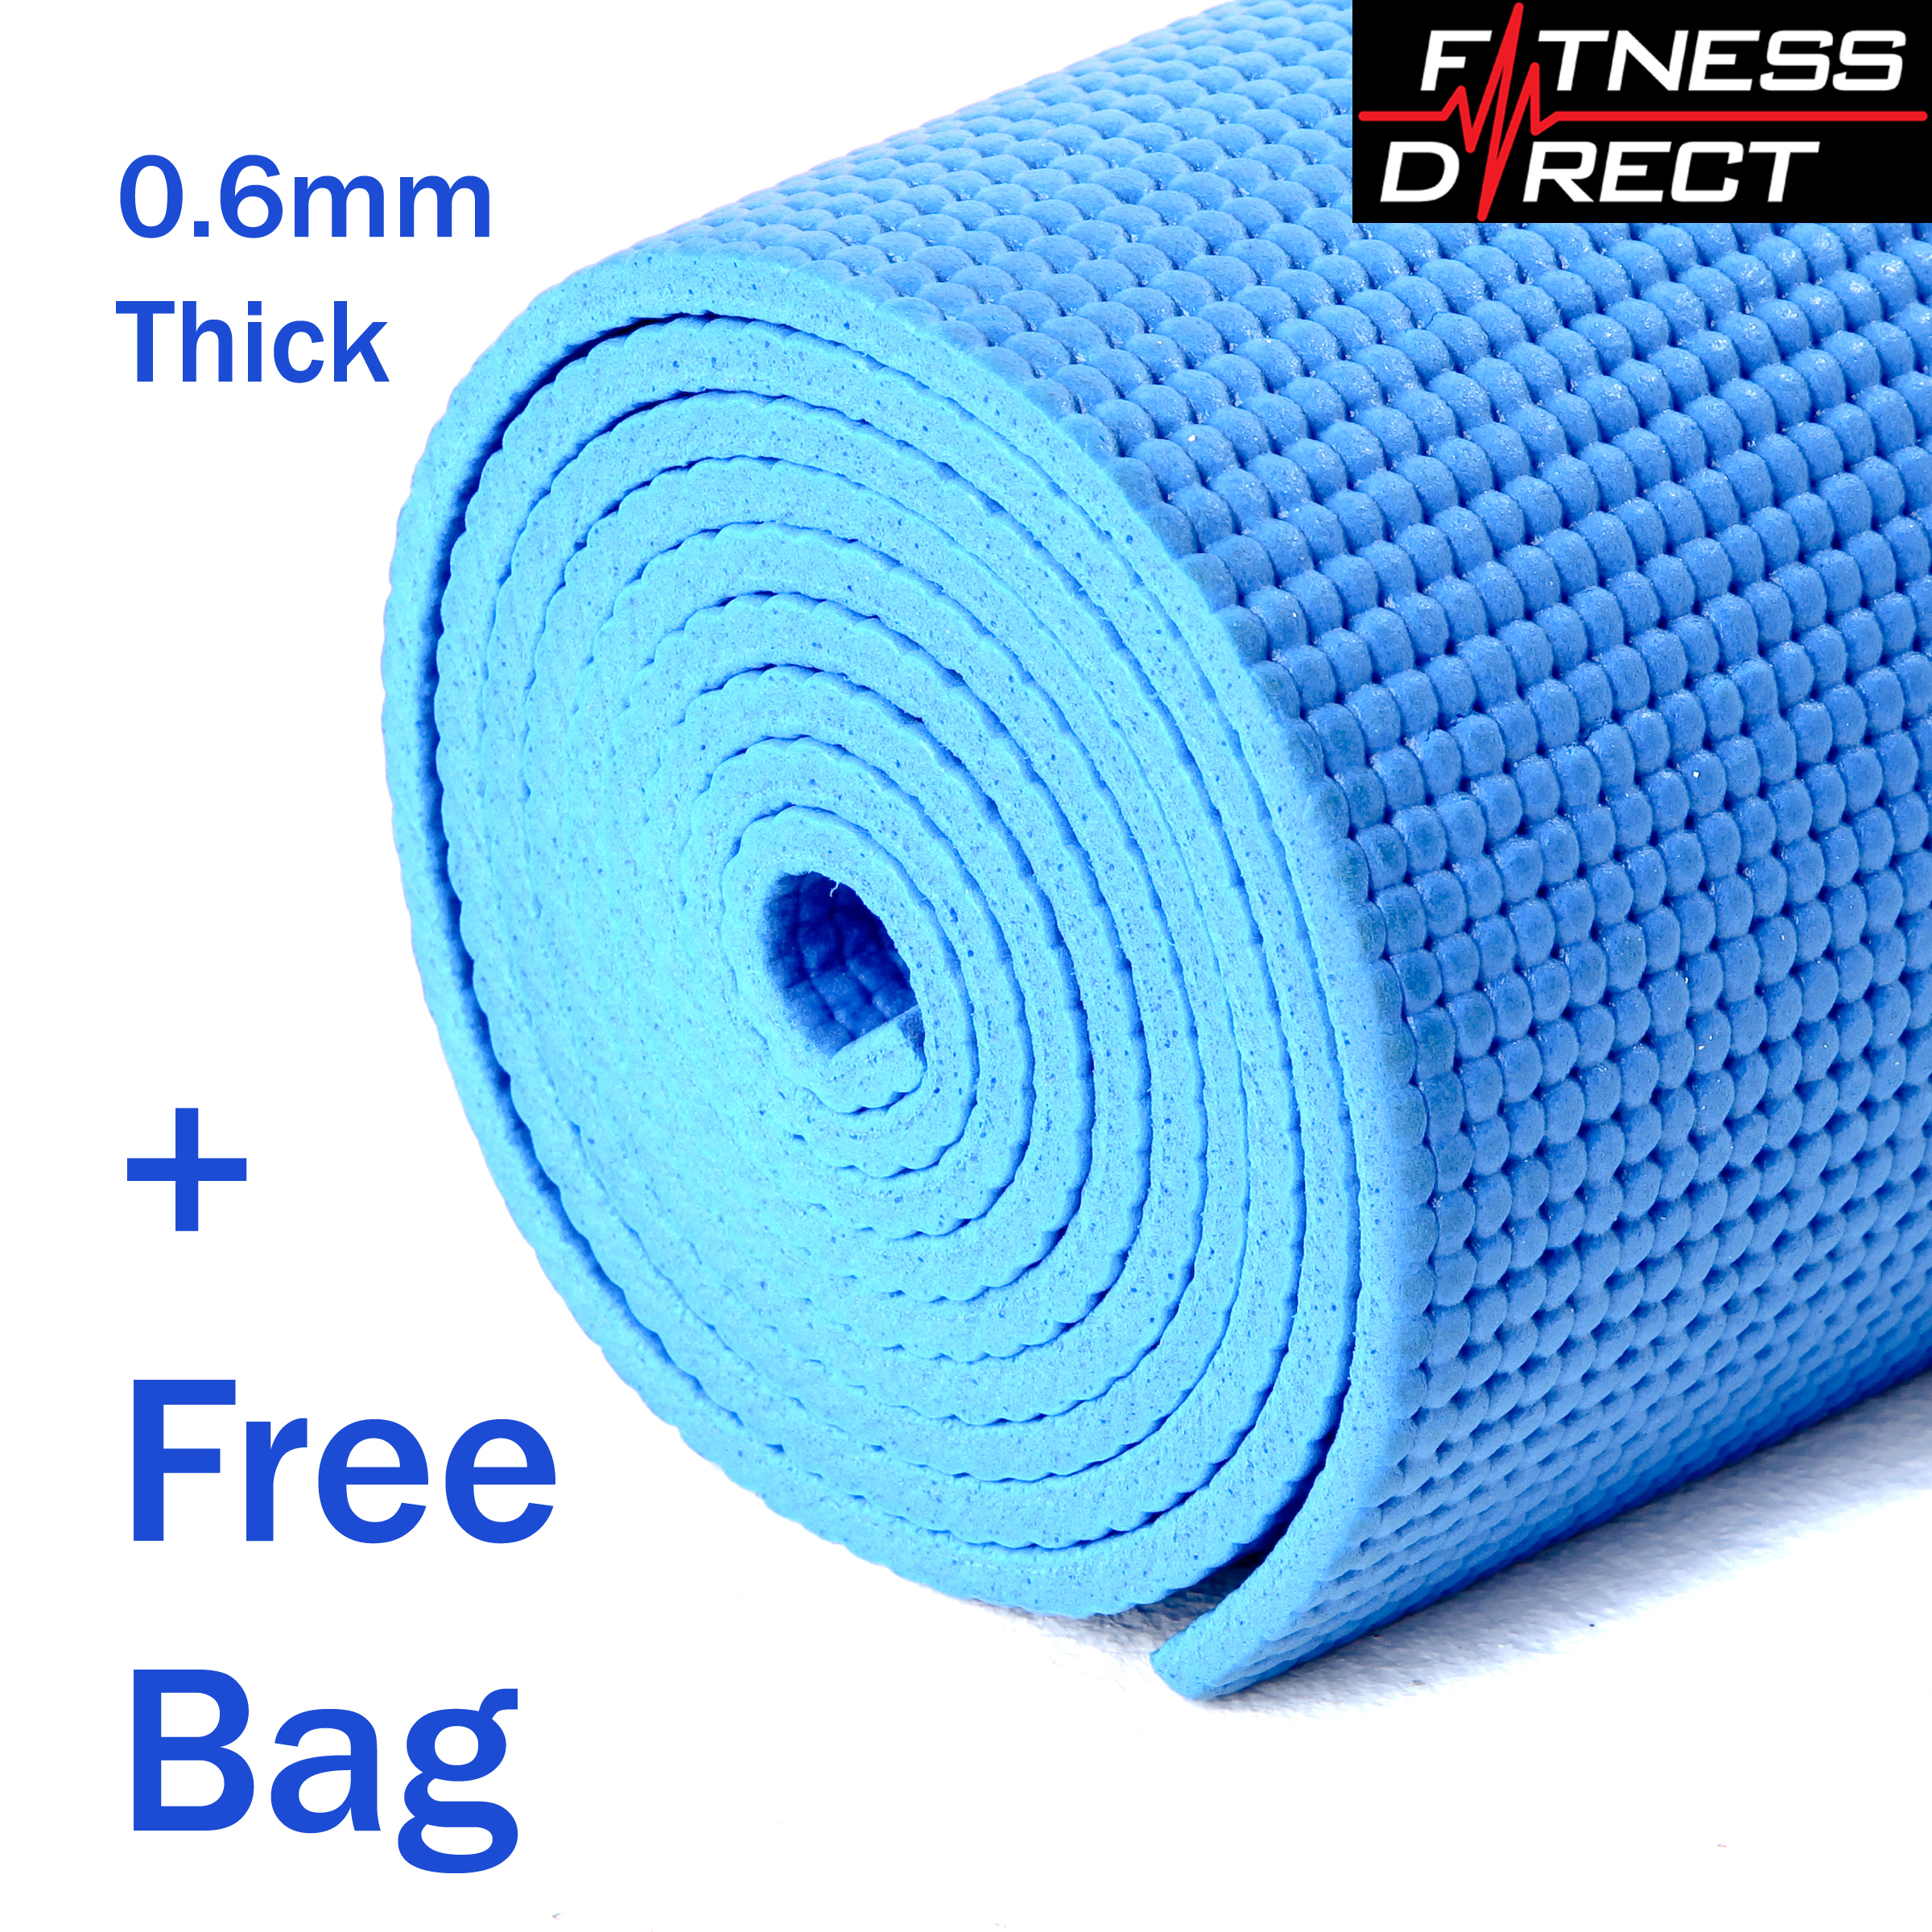 Gym Mats At Sports Direct: Yoga Mat PVC Thick Exercise Pilates Gym Physio Fitness